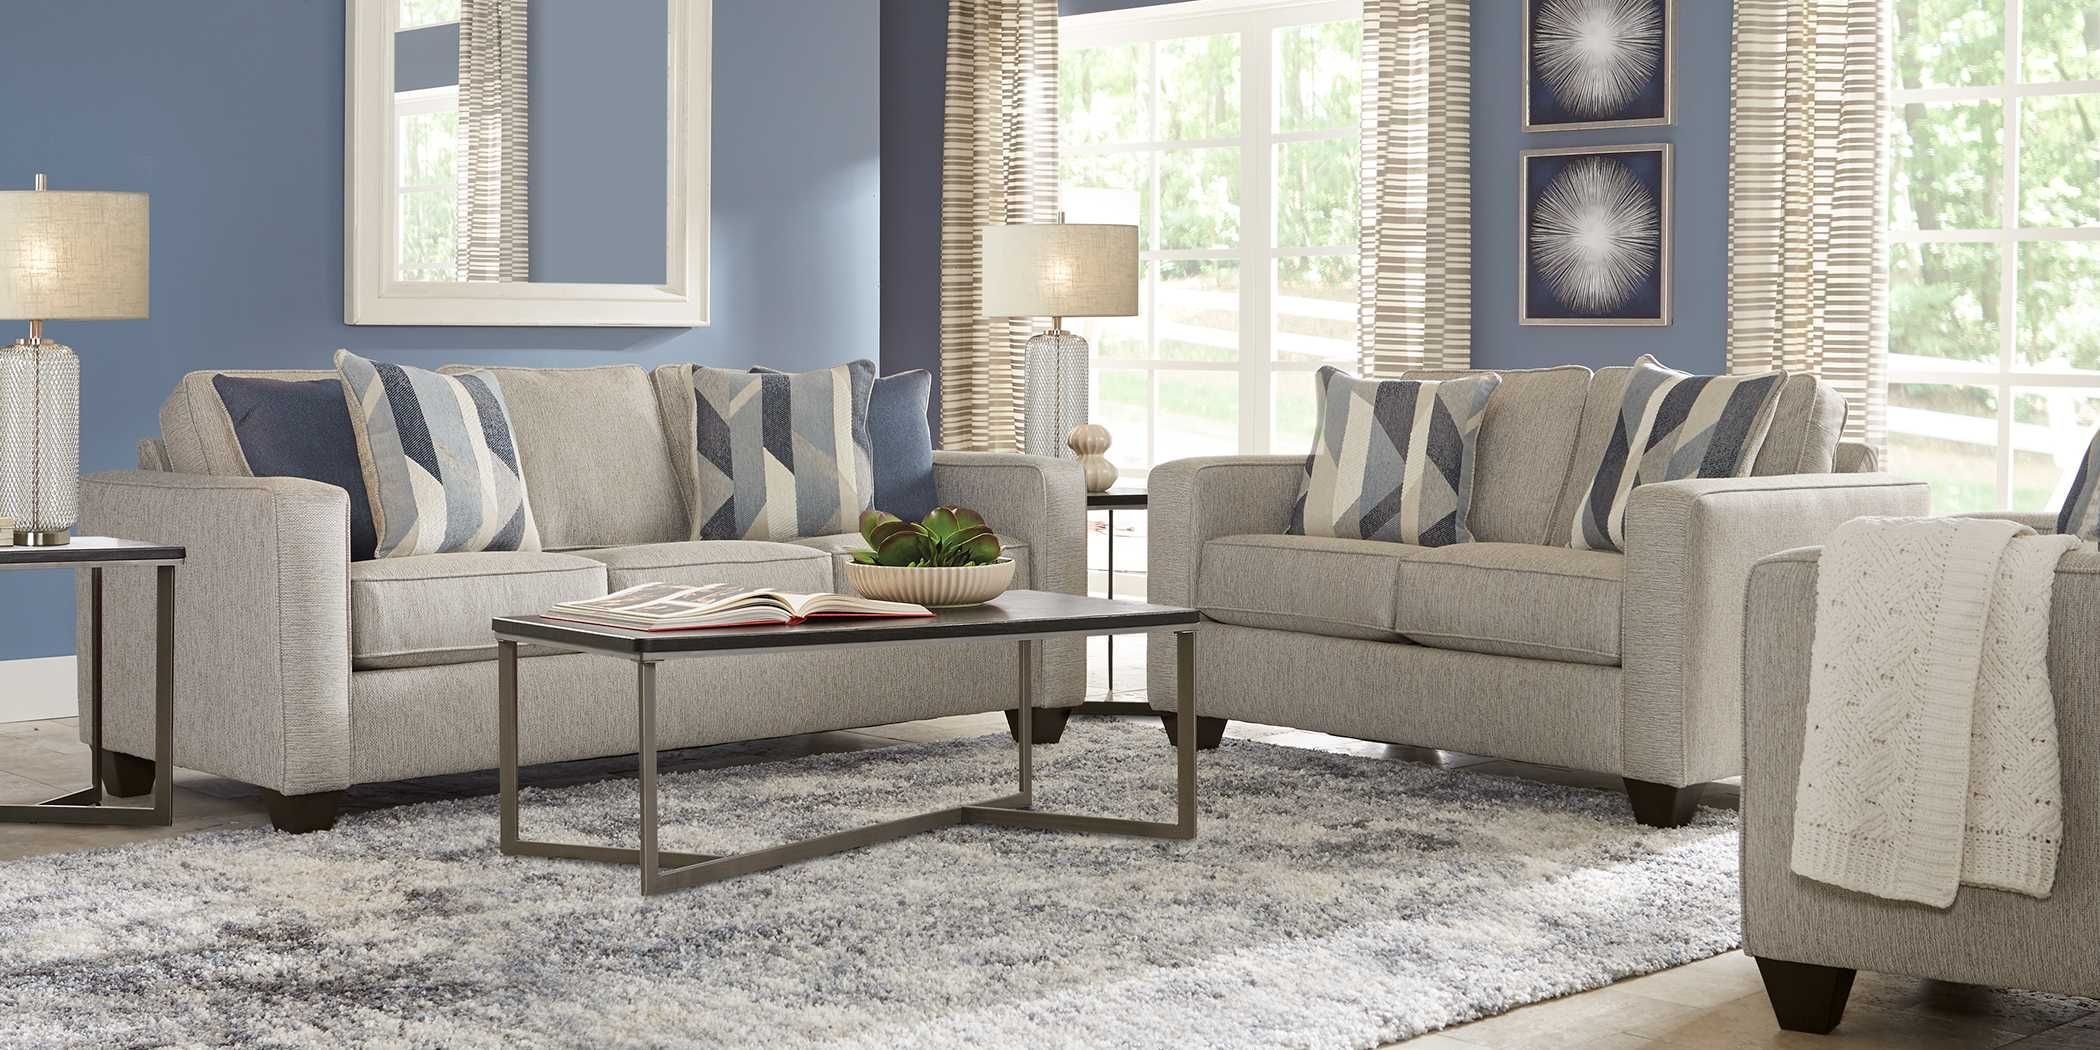 Cindy Crawford Home Westover Hills Brown 5 Pc Square Dining Room Grey Living Room Sets Living Room Sets Furniture Affordable Living Room Set